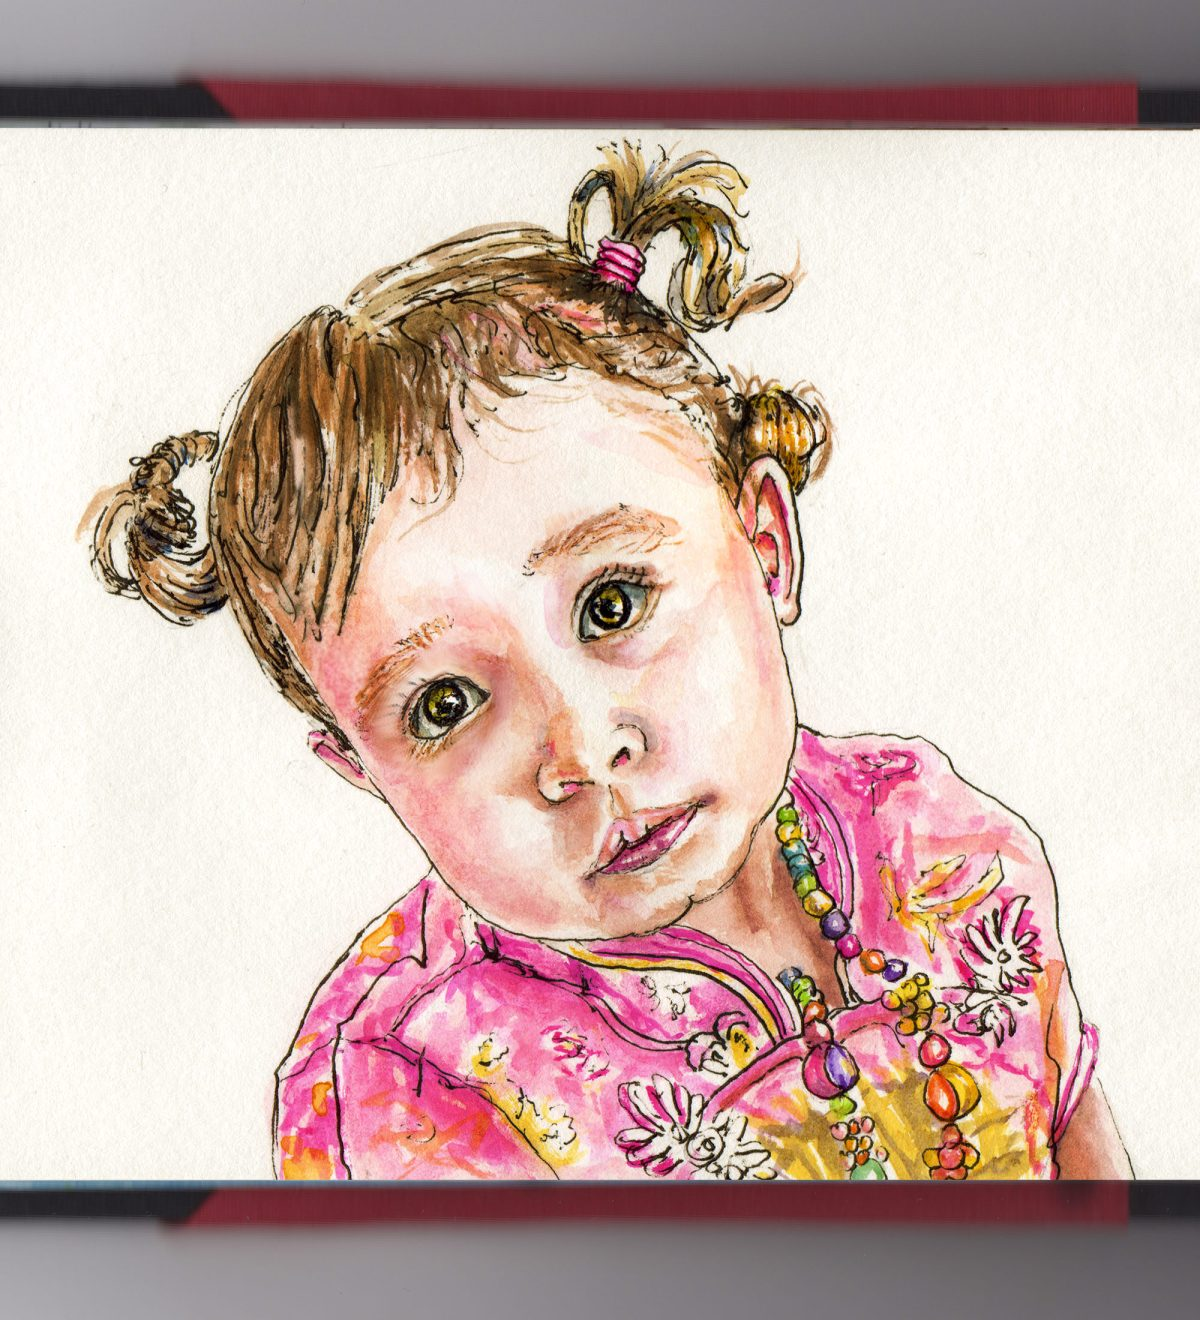 Day 23 - #WorldWatercolorGroup Face of a Little Girl Watercolor Portrait - #doodlewash